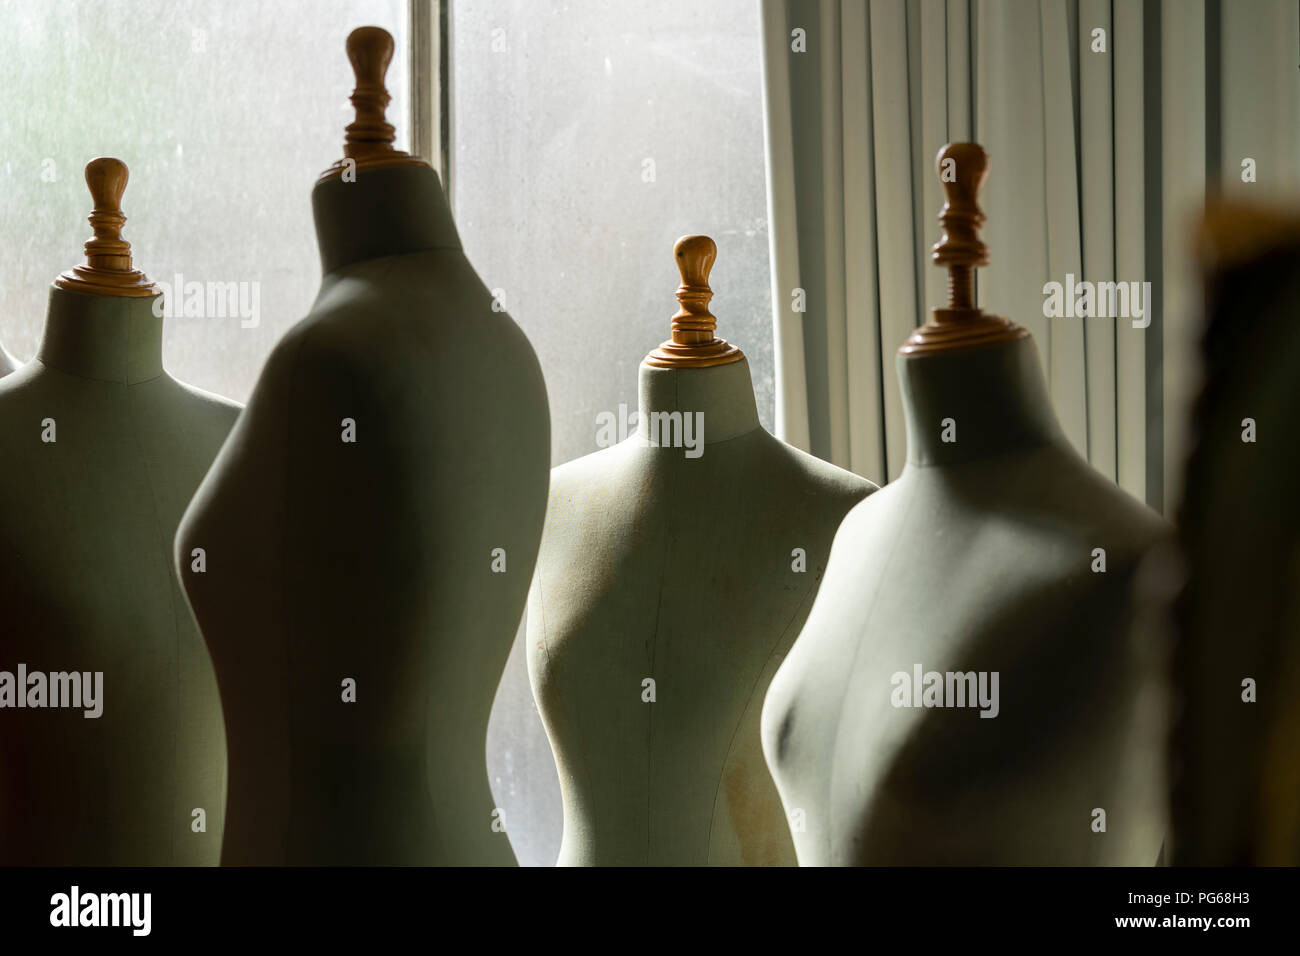 Dressmaker's models in fashion designer's studio - Stock Image